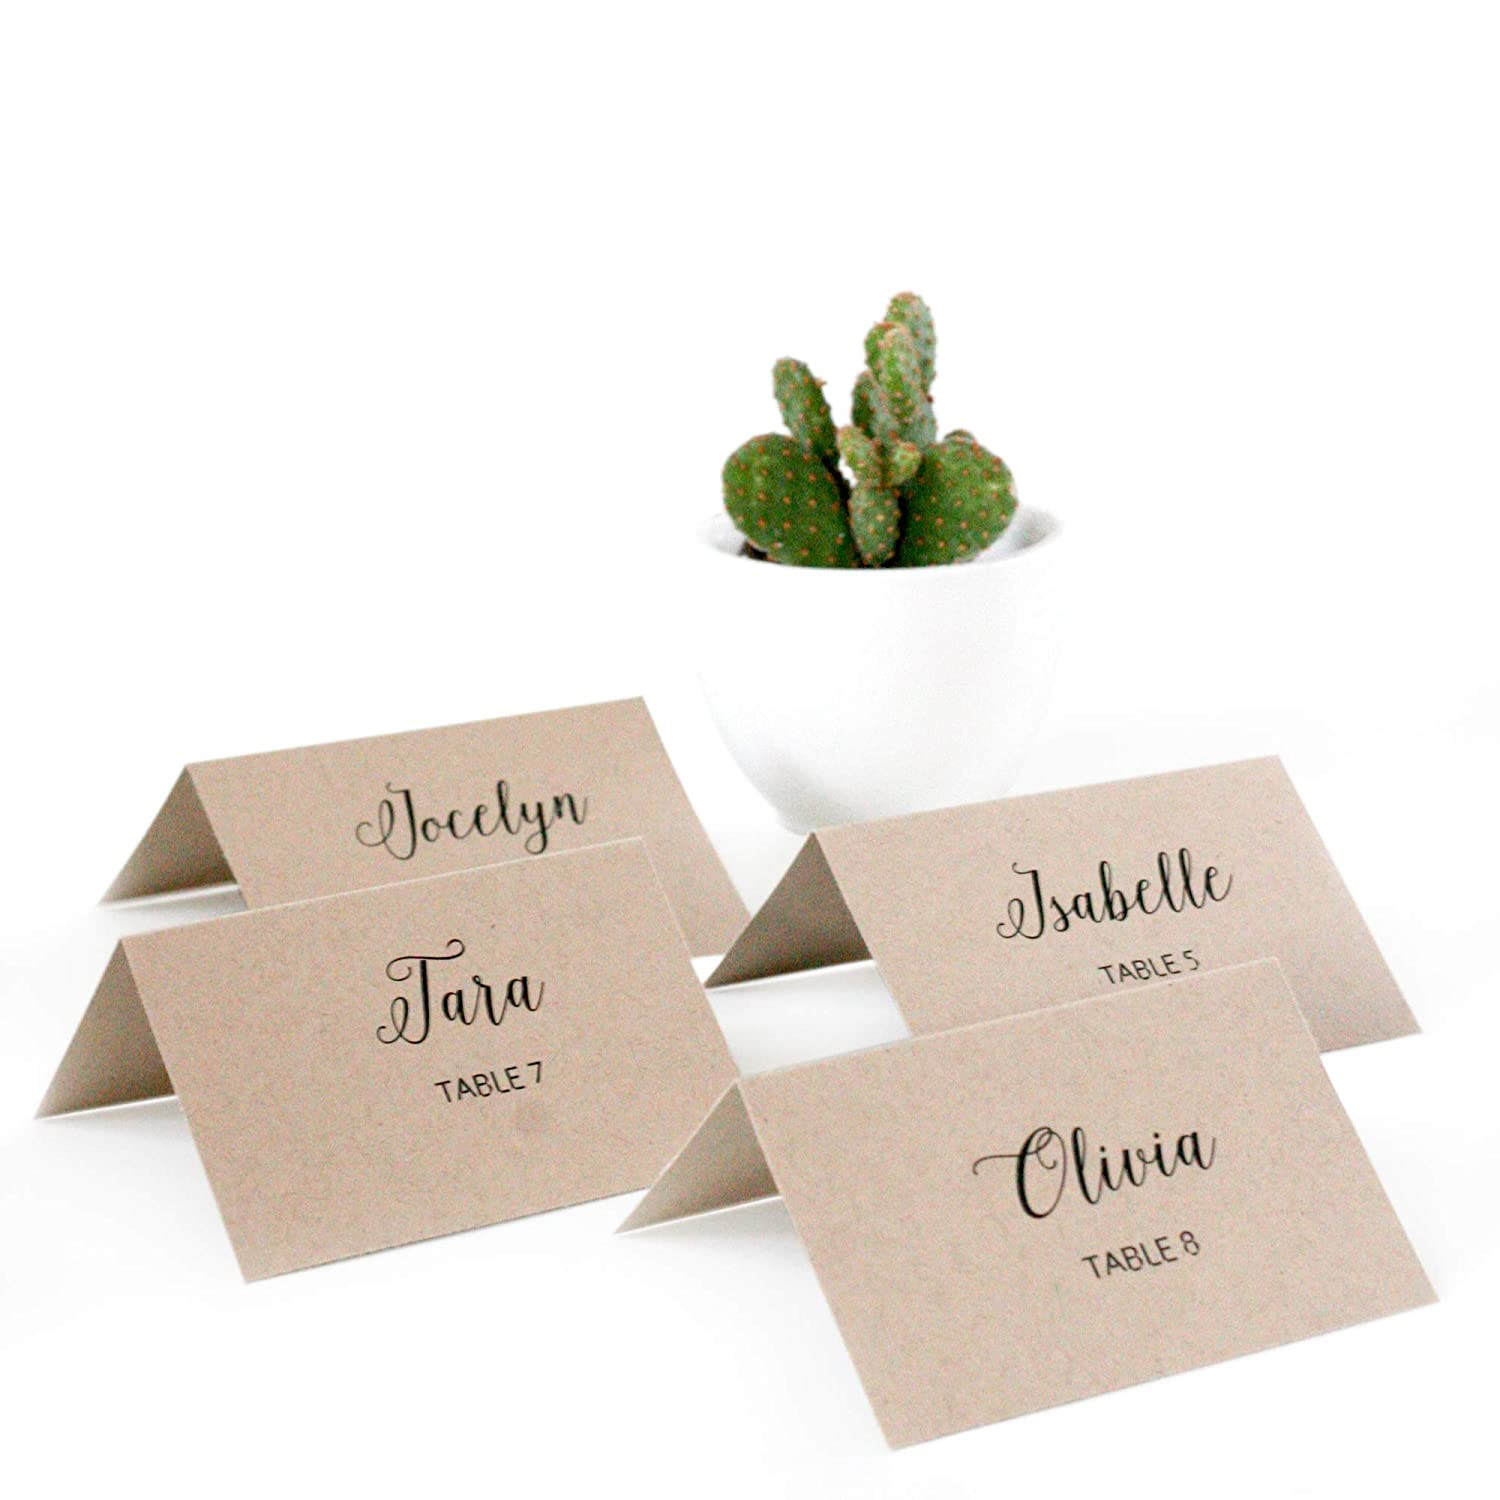 graphic about Printable Place Cards titled BonBon Paper Printable Location Playing cards (Recycled Kraft)